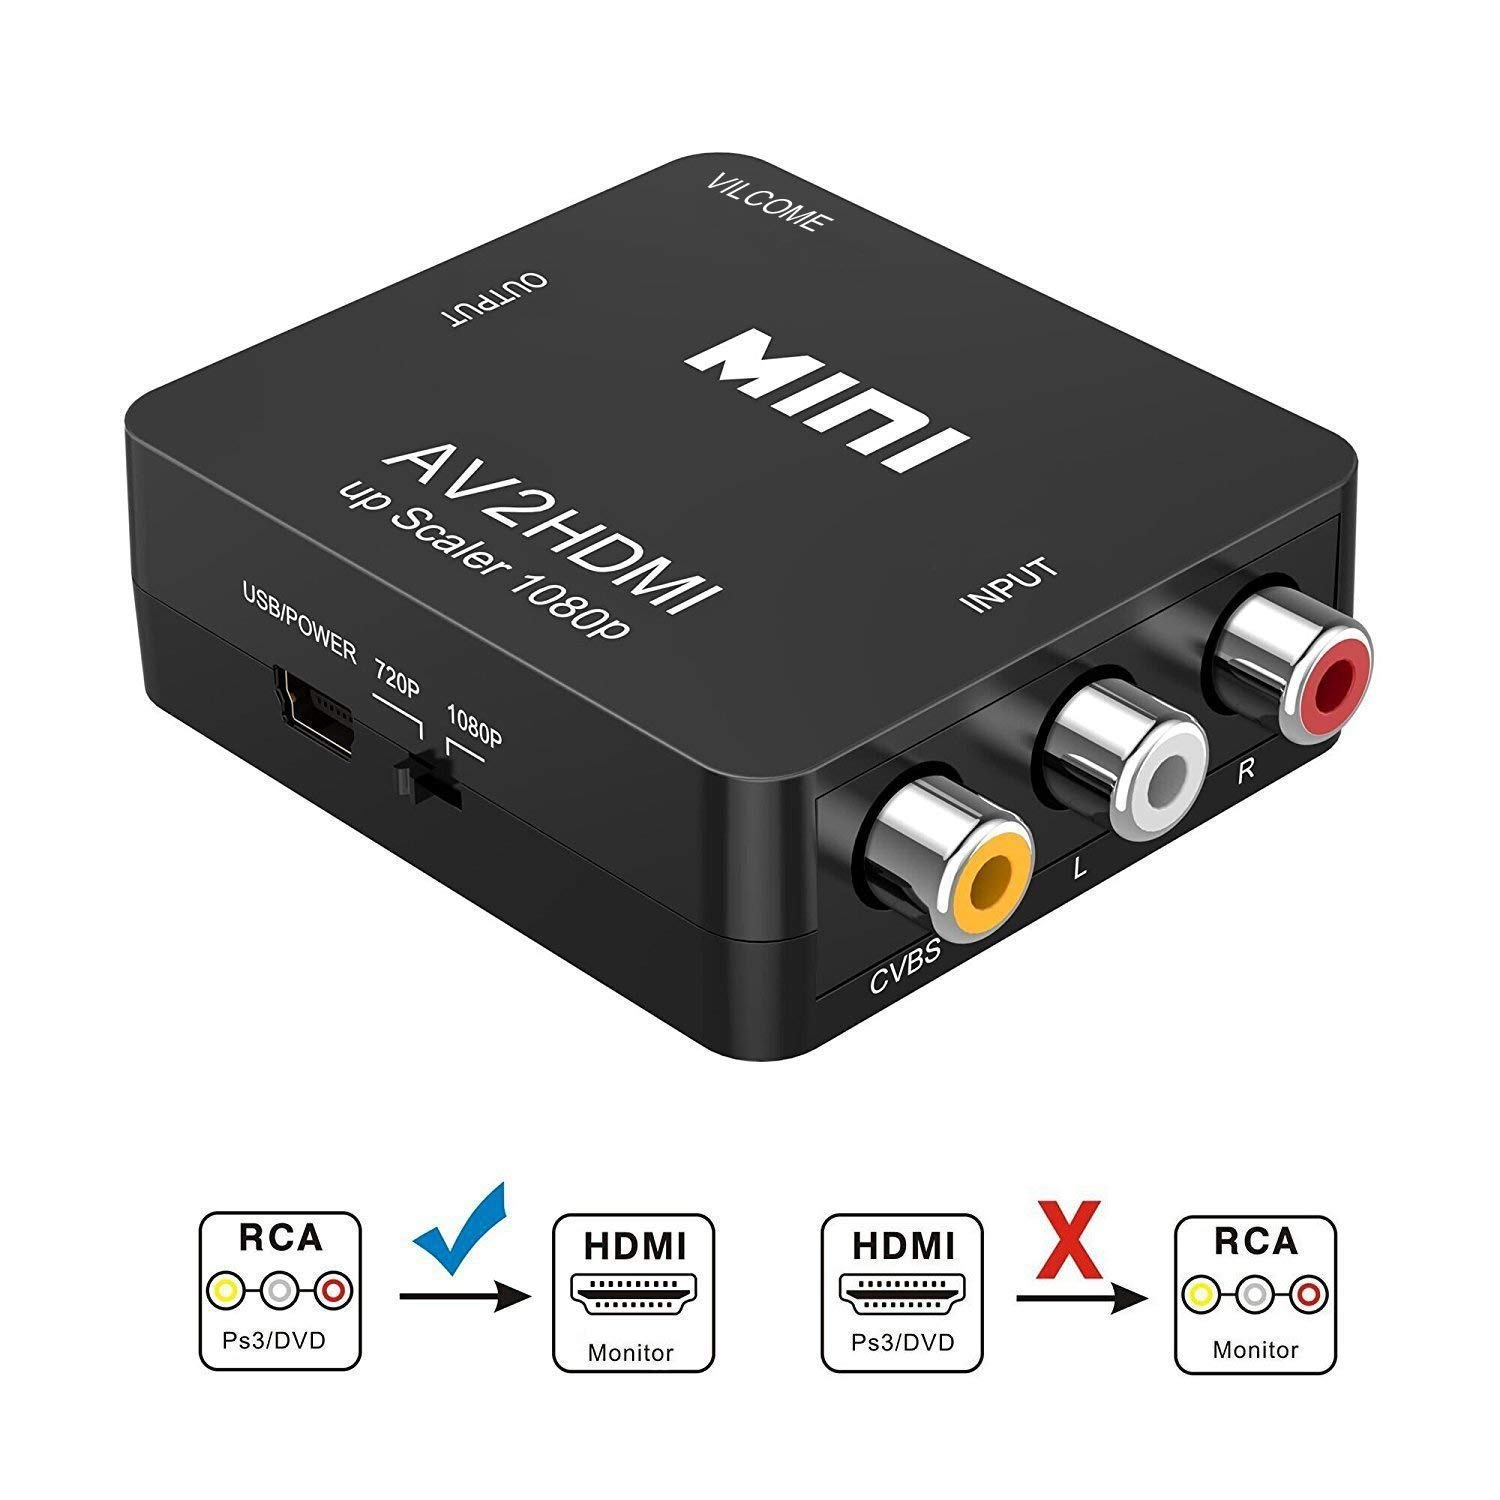 RCA to HDMI, AV to HDMI, Vilcome 1080P Mini RCA Composite CVBS AV to HDMI Video Audio Converter Adapter Supporting PAL/NTSC with USB Charge Cable for PC Laptop Xbox PS4 PS3 TV STB VHS VCR Camera DVD